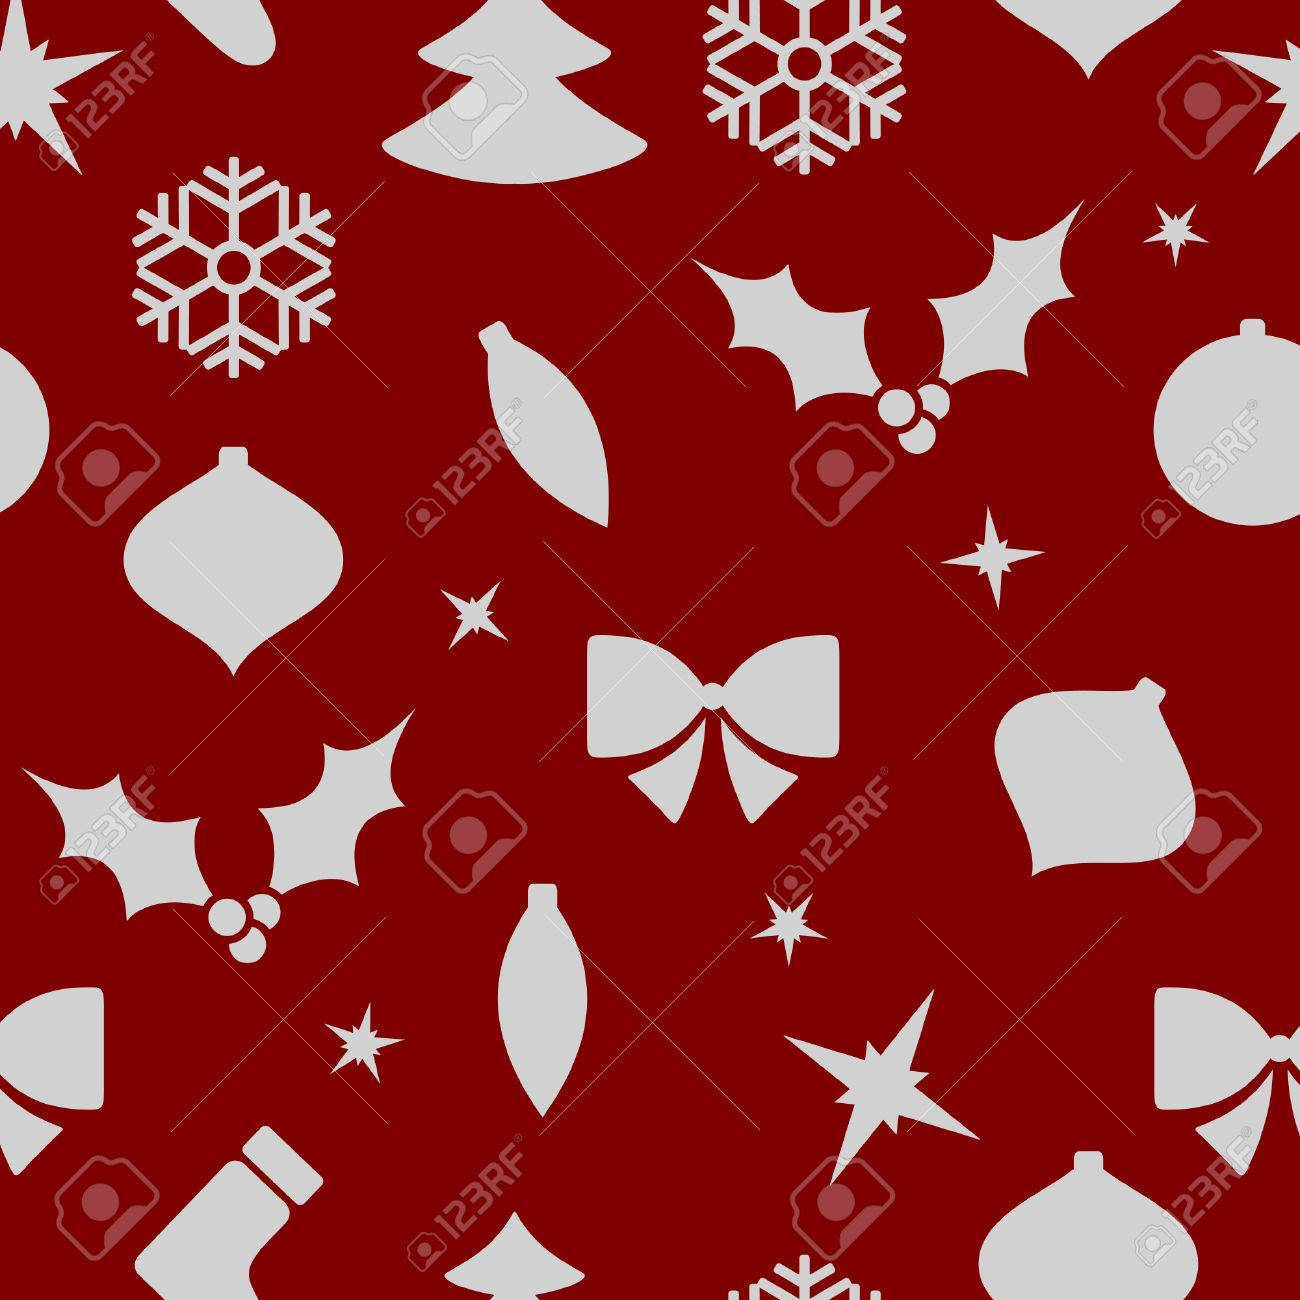 Modern Christmas New Year Background, Seamless Tiling, Paper ...